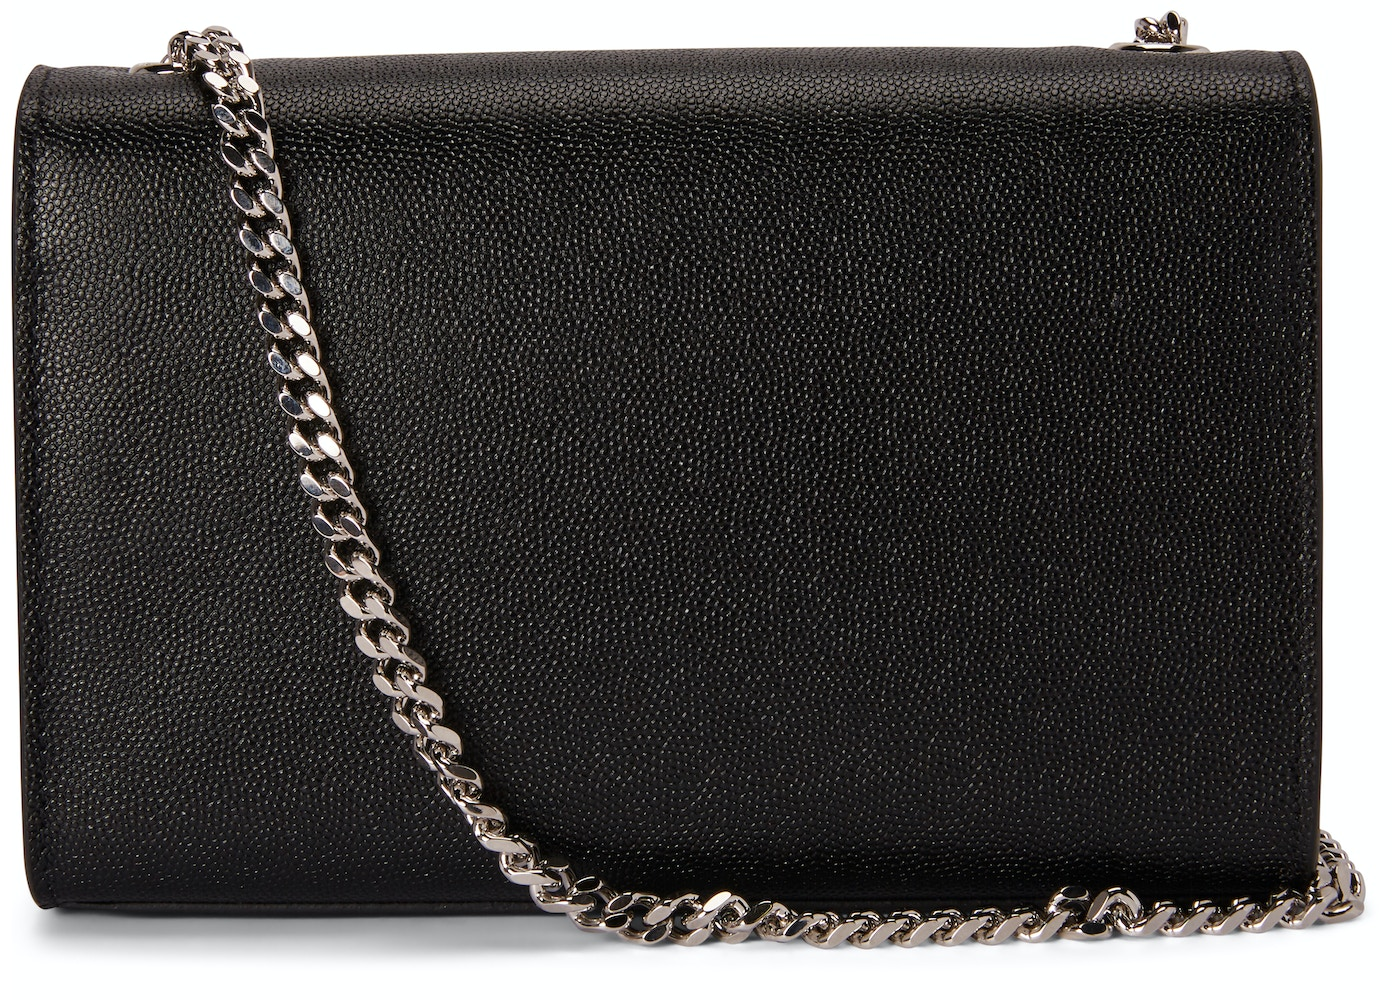 10388ce9463d Saint Laurent Chain Kate Textured Leather Interlocking Metal YSL Signature  Small Black